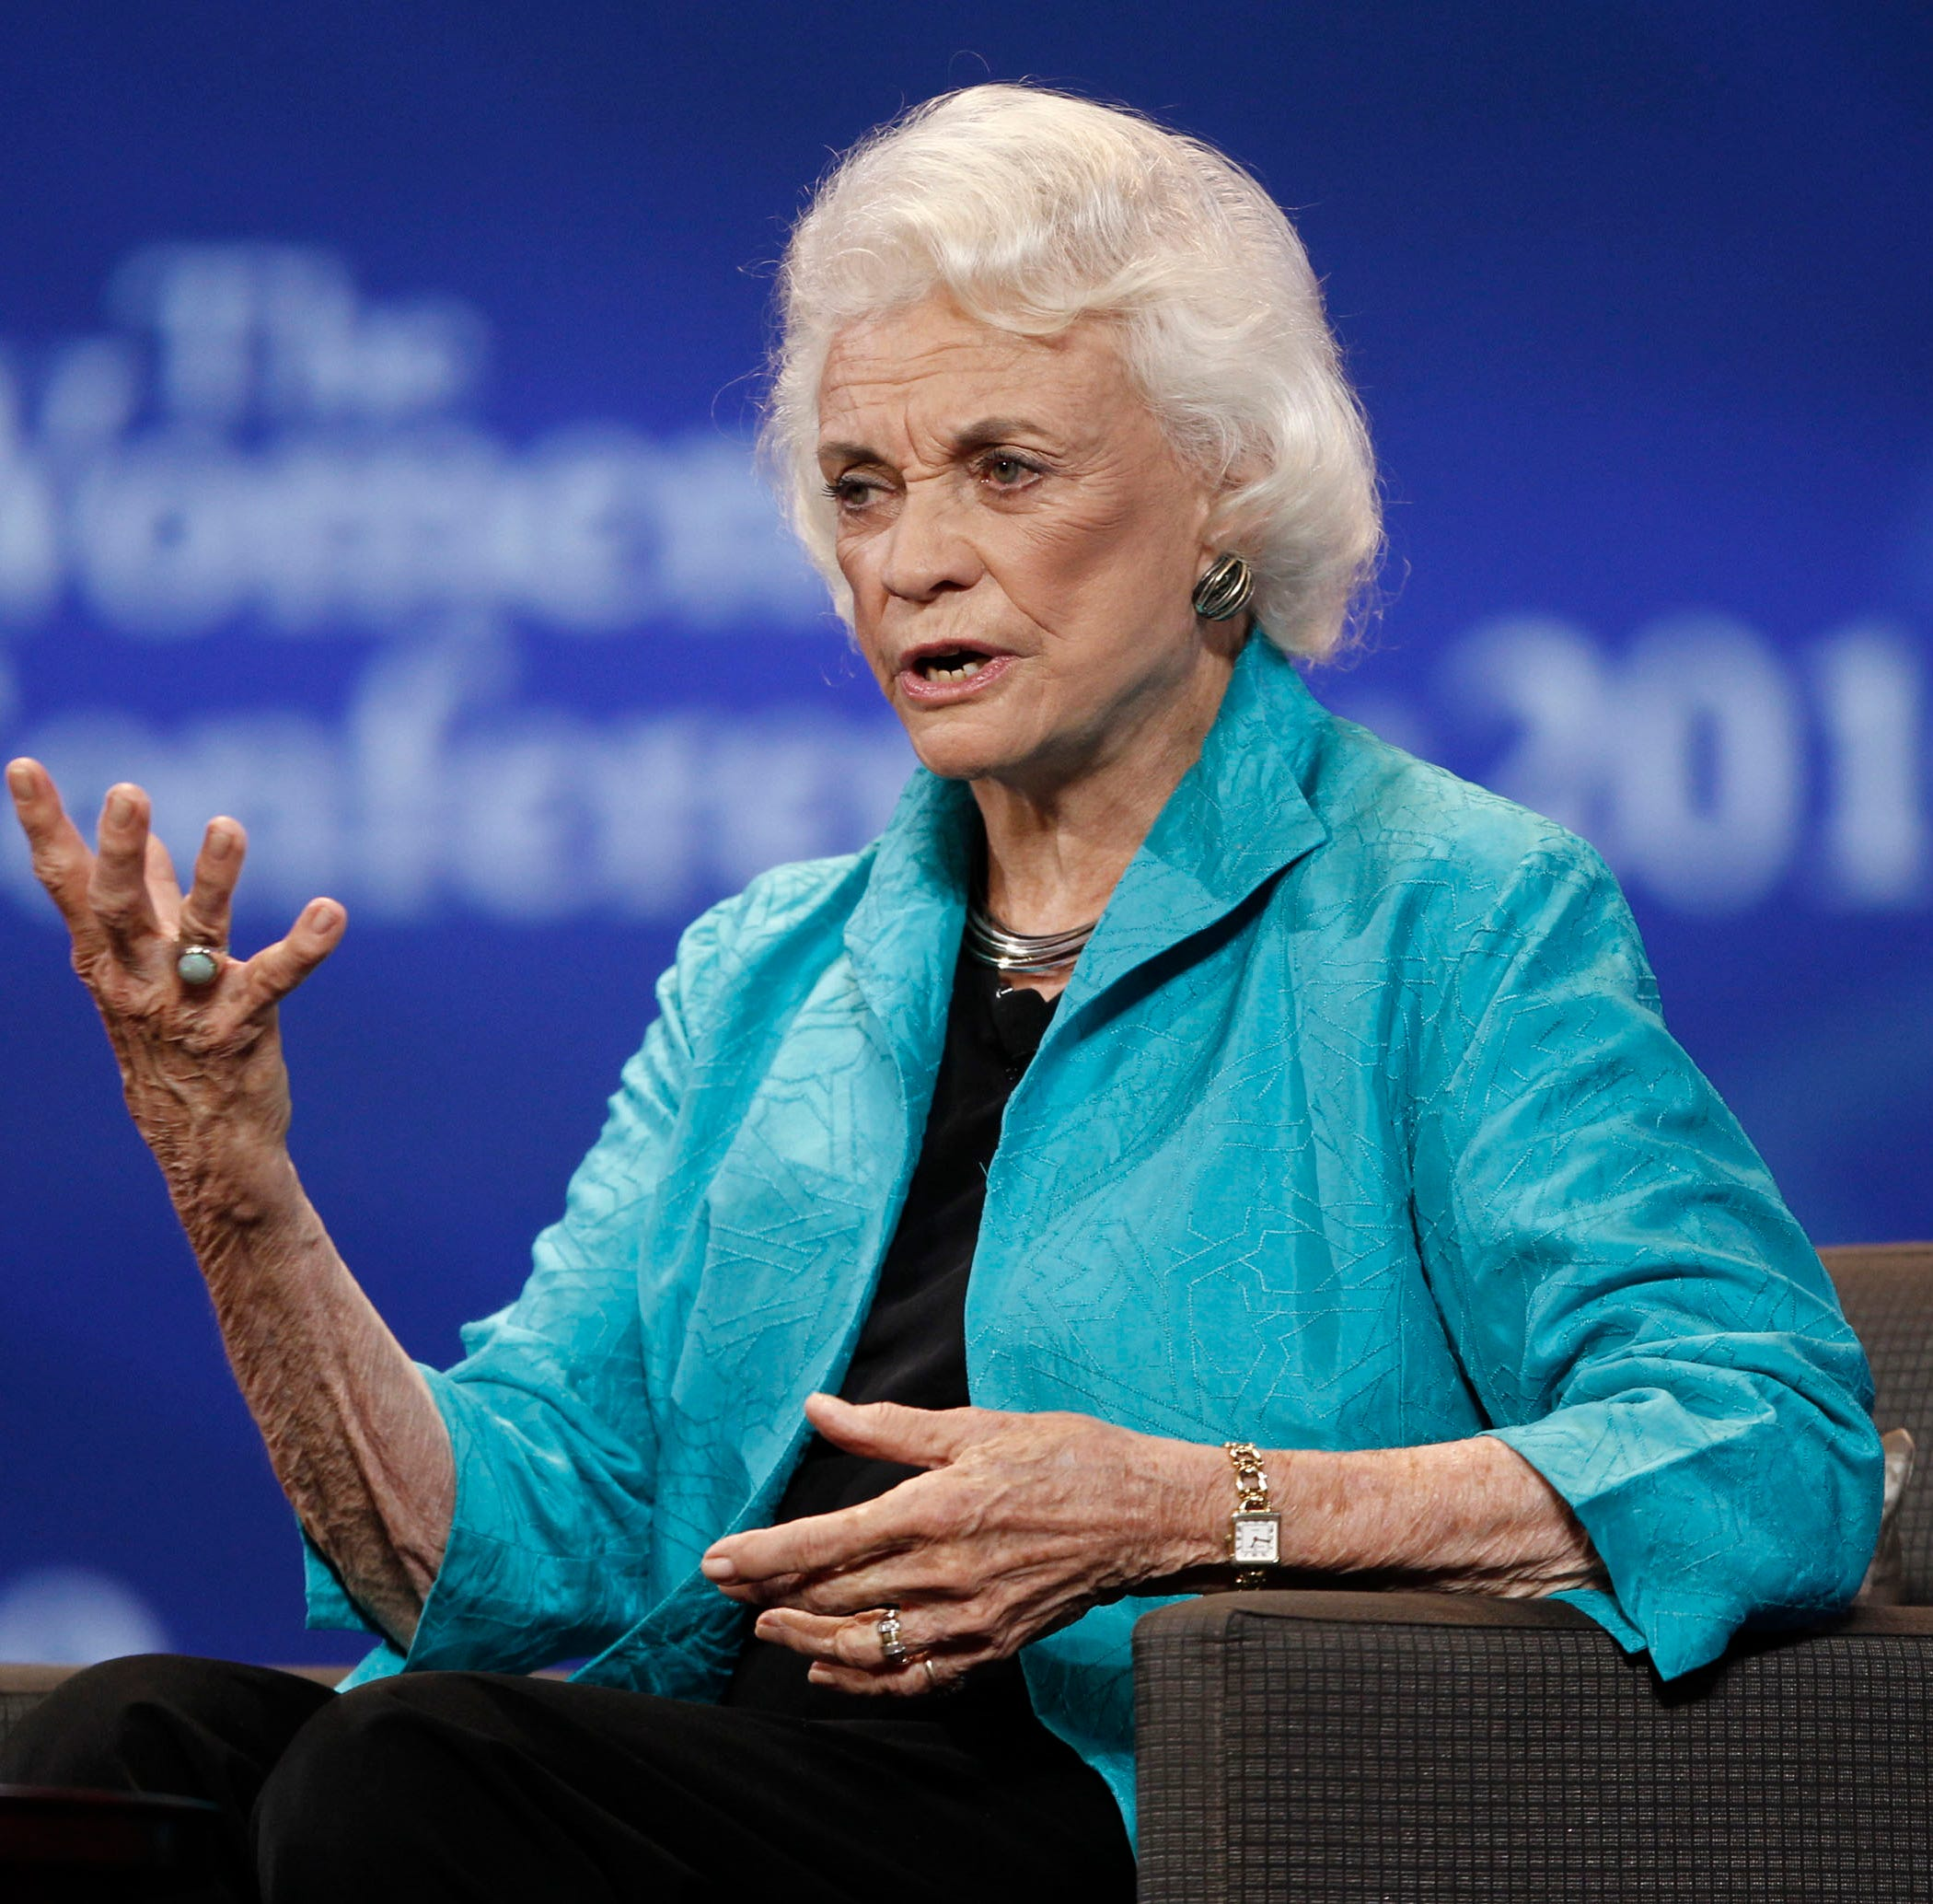 Sandra Day O'Connor announces that she has dementia